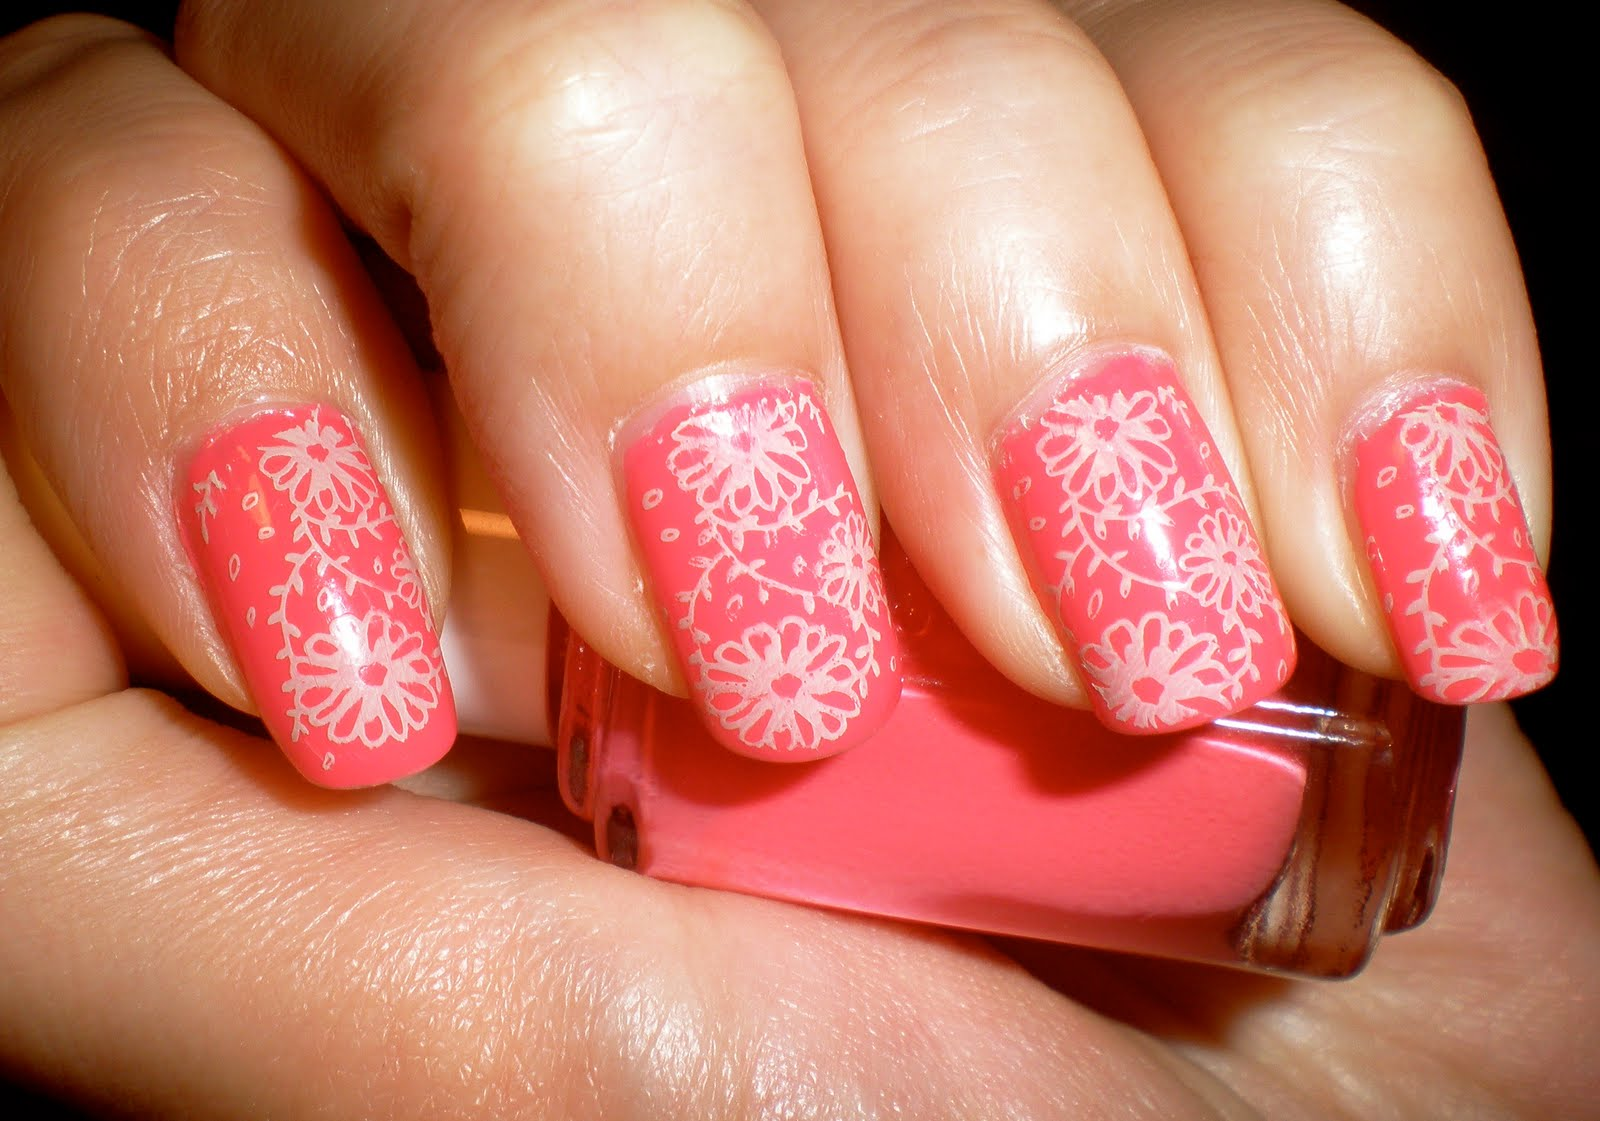 Easy and simple nail designs easy and simple nail designs 15 super easy nail art ideas that your friends will 40 diy solutioingenieria Gallery